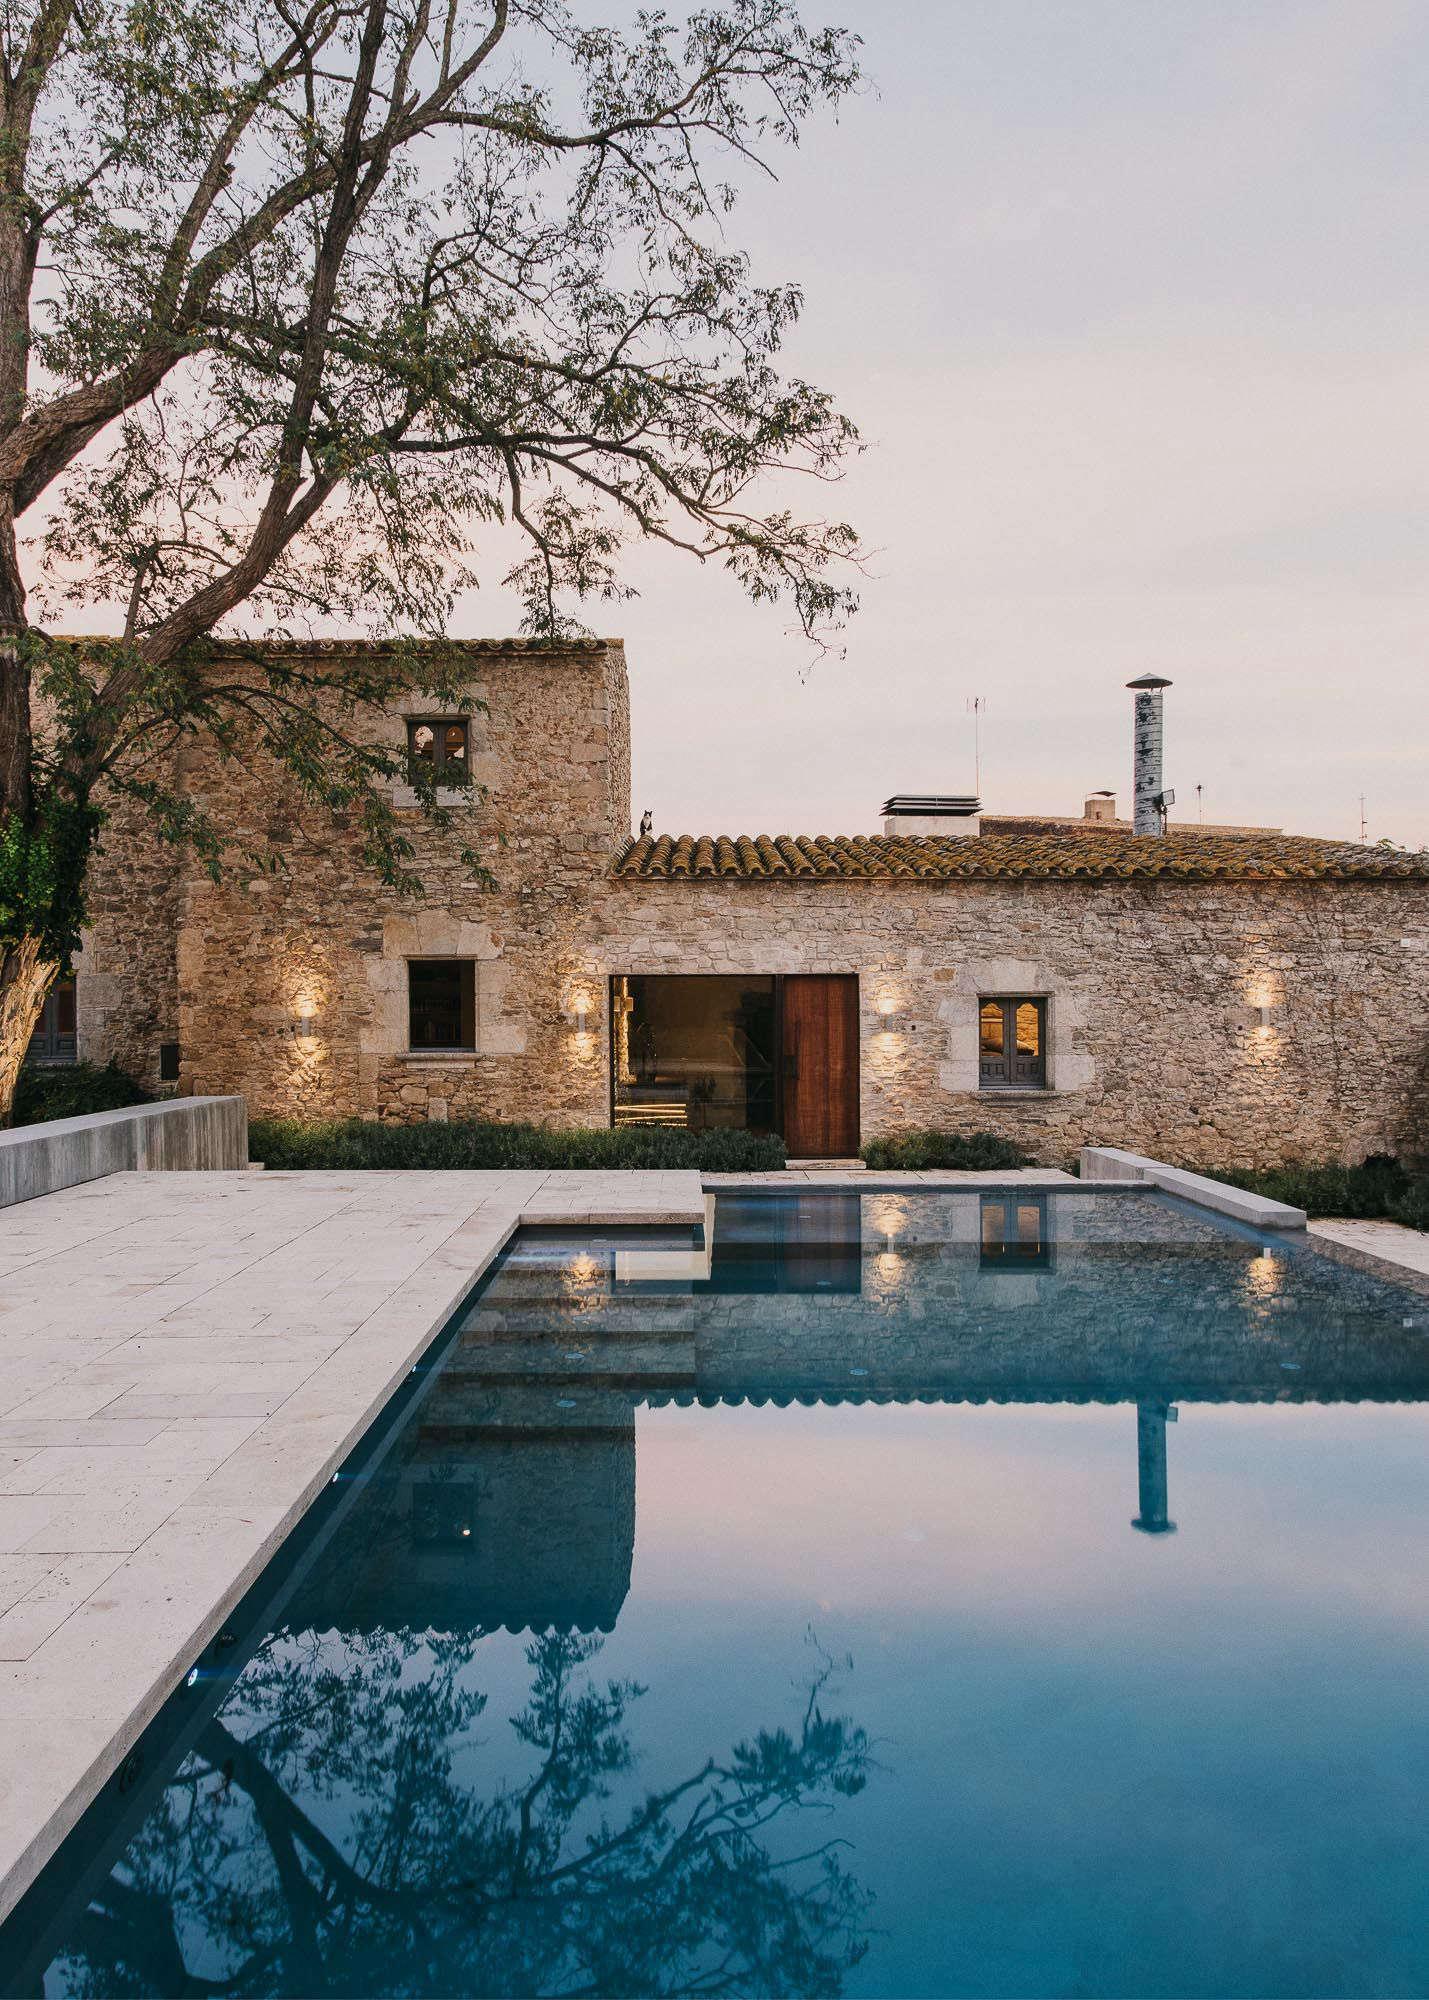 A 10th Century Castle Swimming Pool Of The Week: A Modern Infinity Pool For